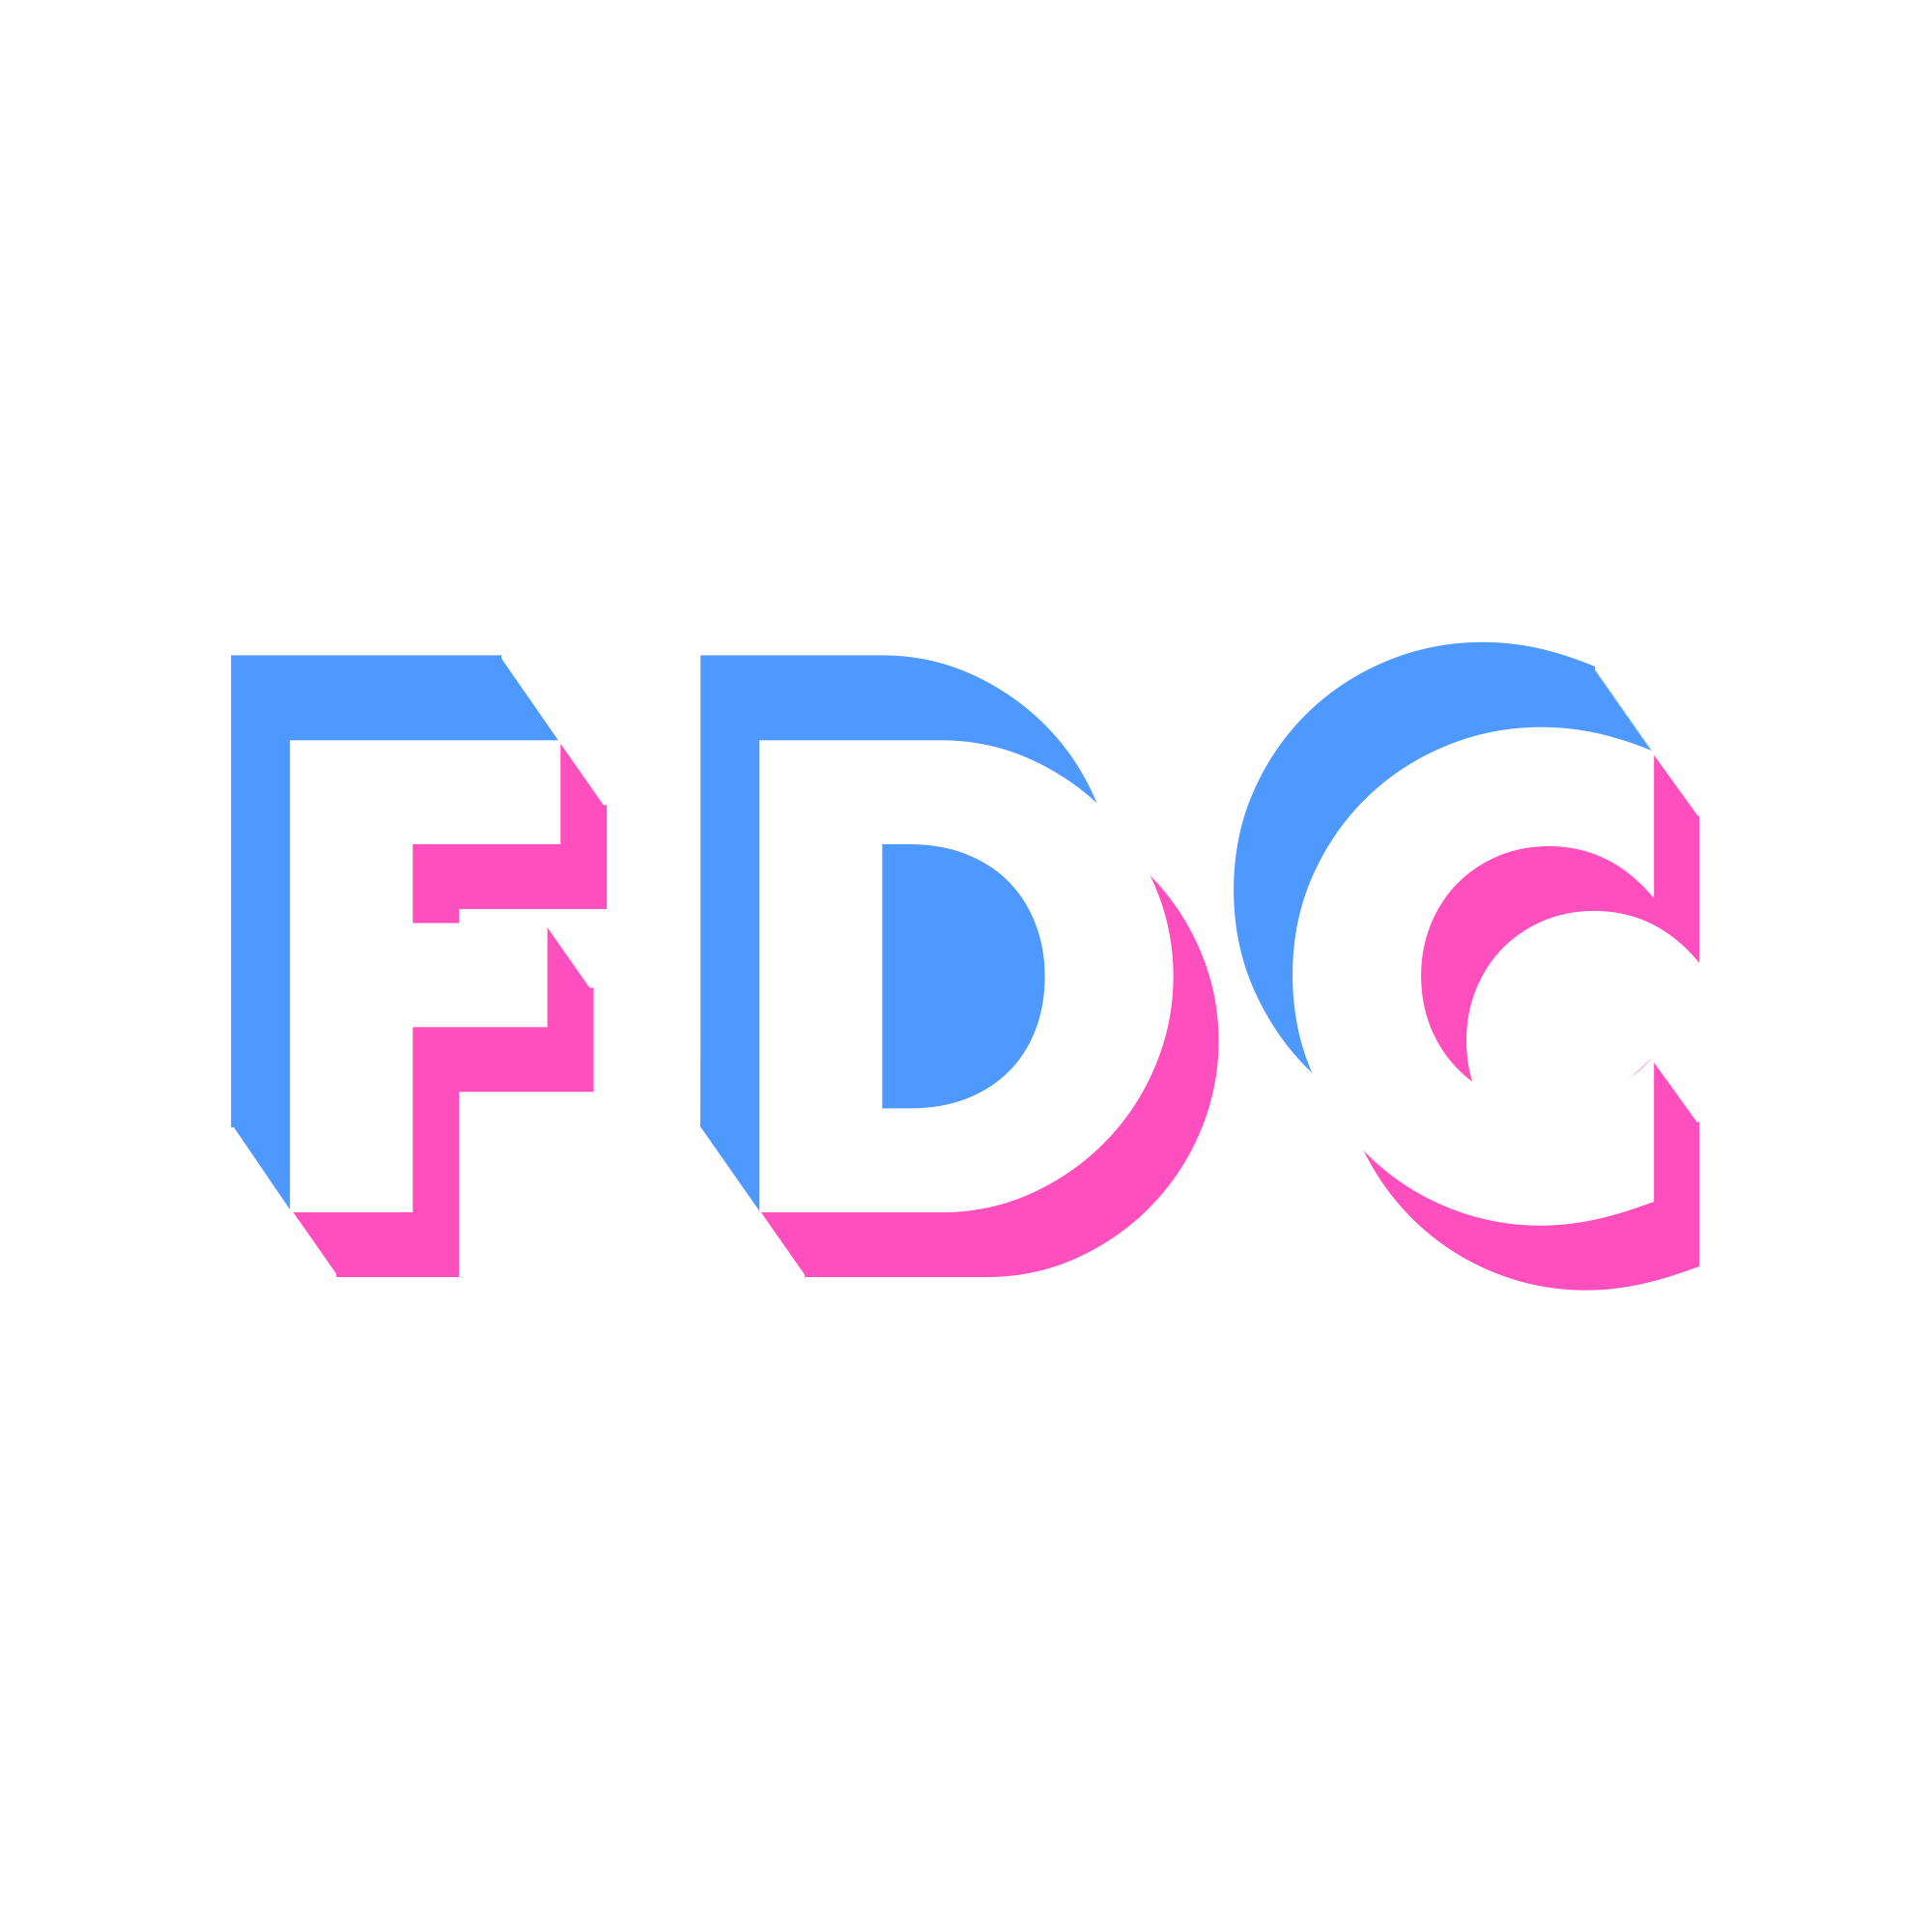 Fat Dragon Coffee - FDC Graphic